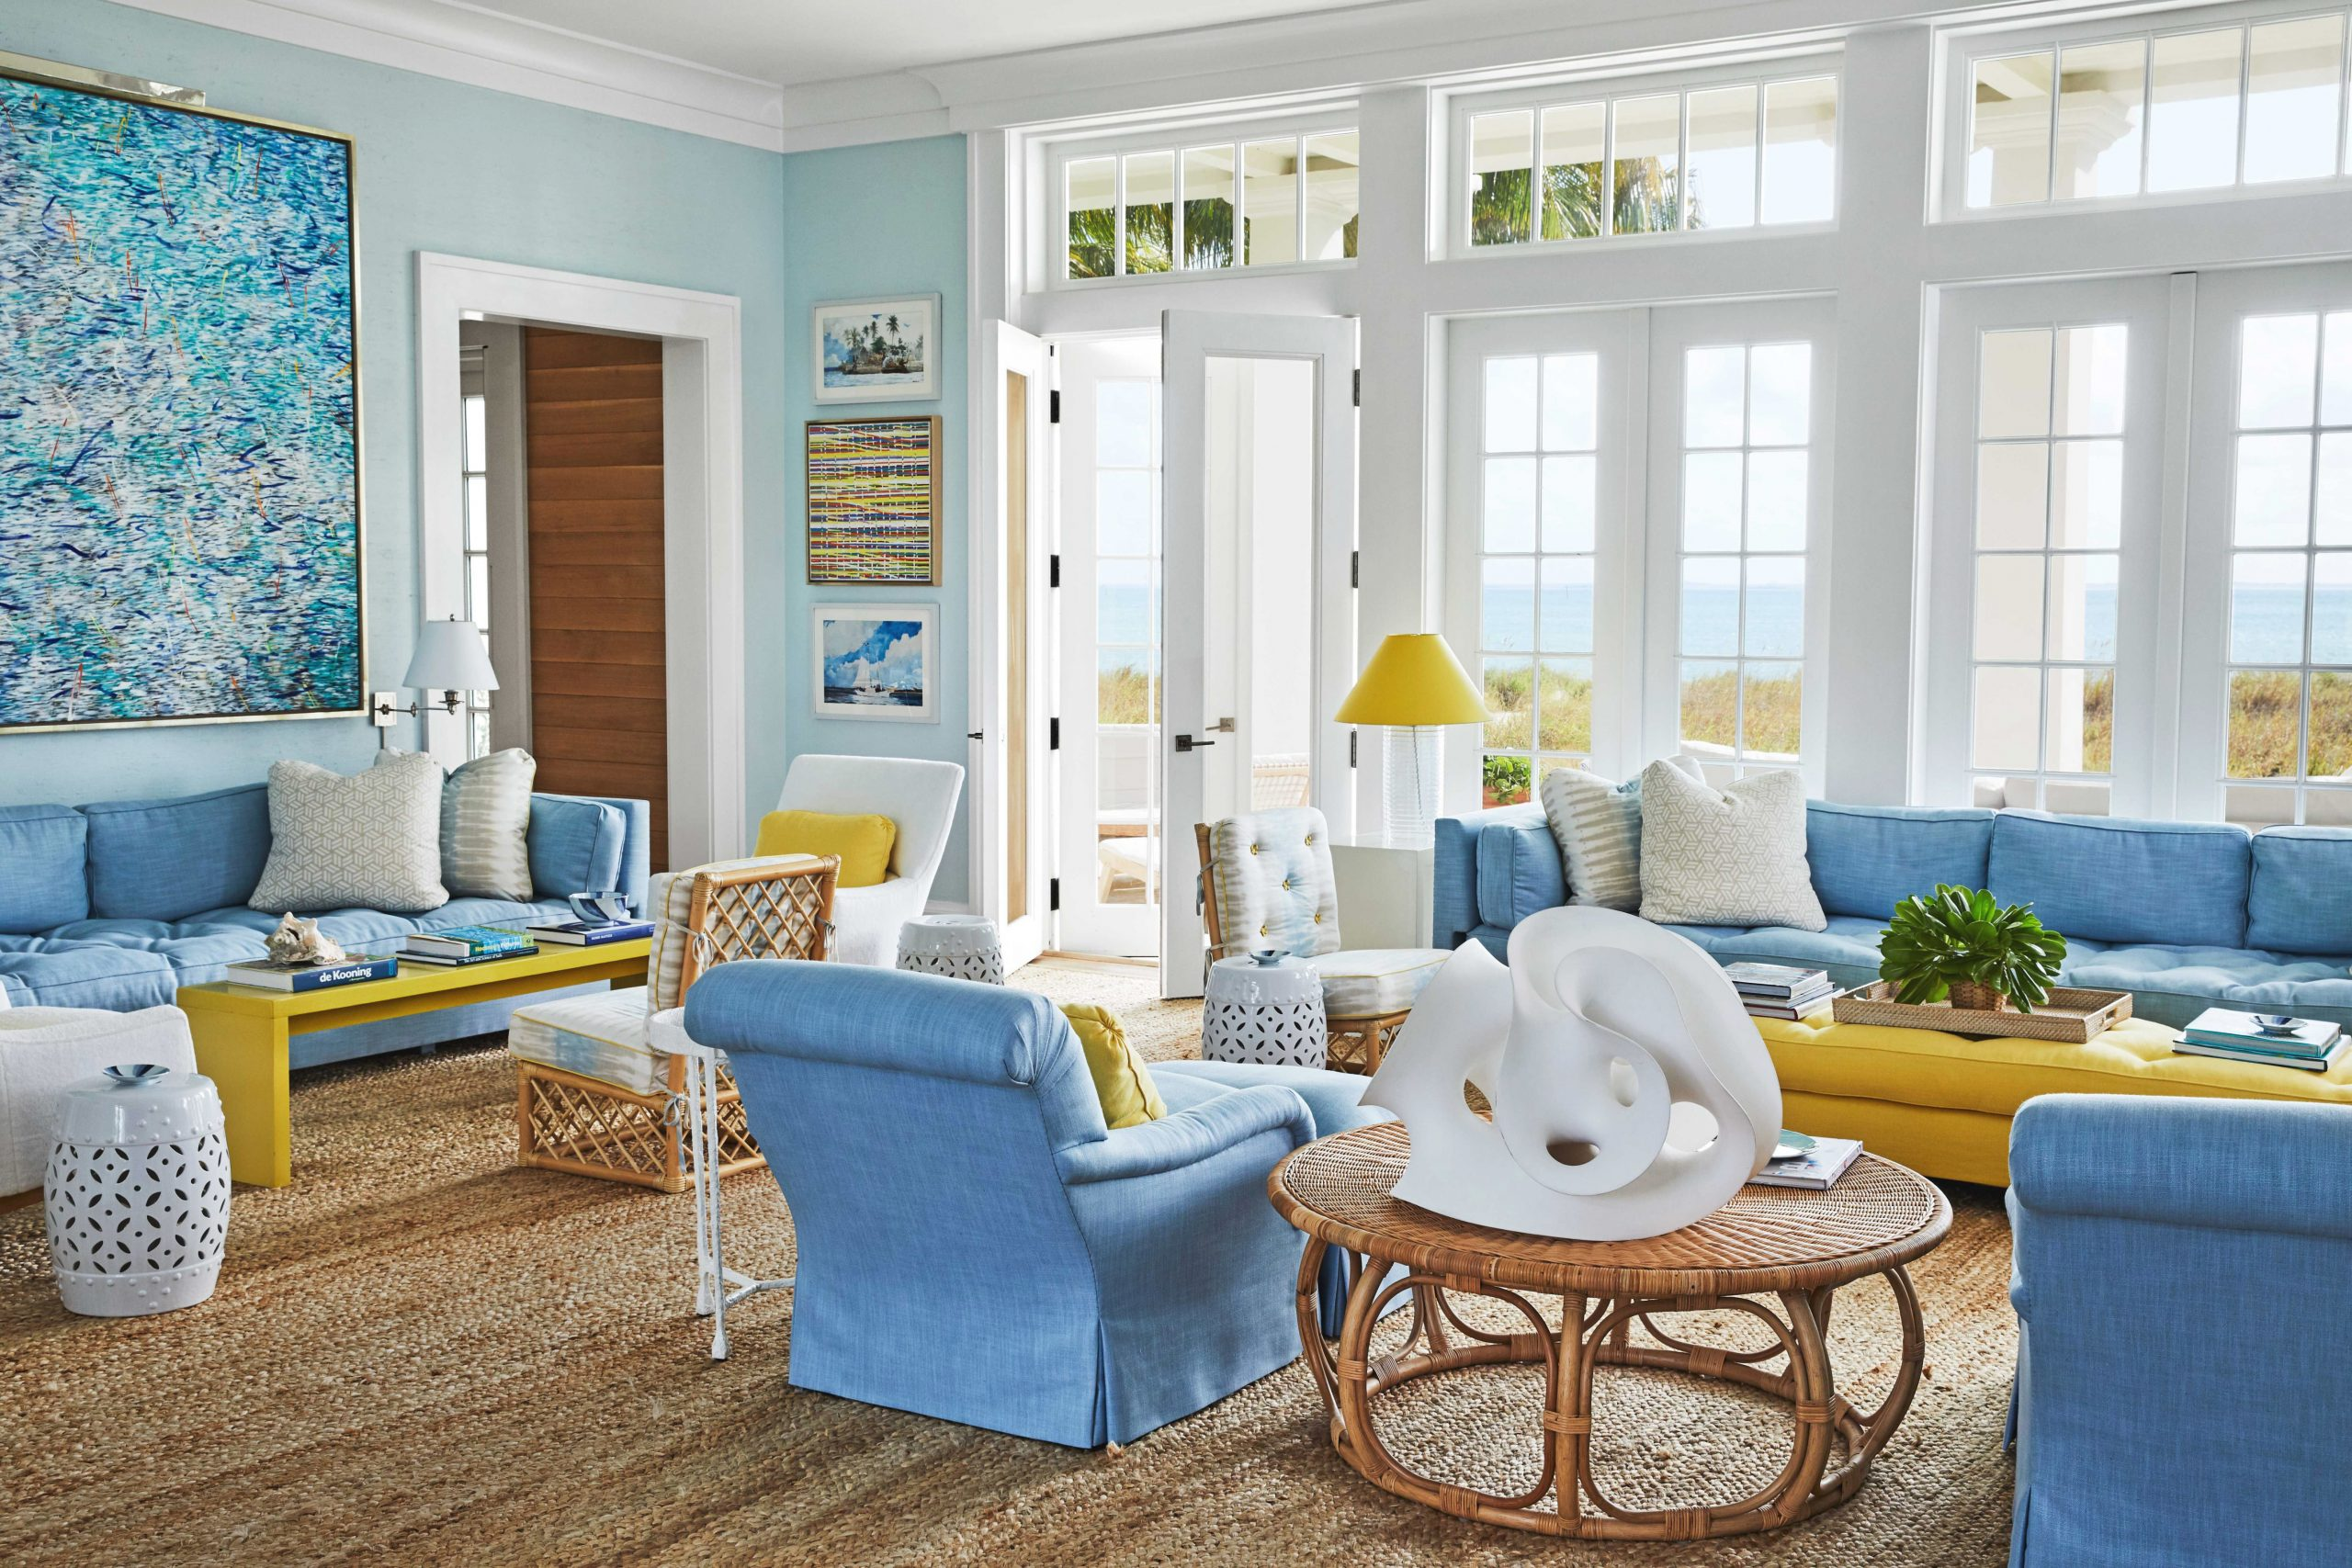 Best 30 Living Room Paint Colors - Beautiful Wall Color Ideas in Awesome Inspiration For Wall Paint Colors For Living Room